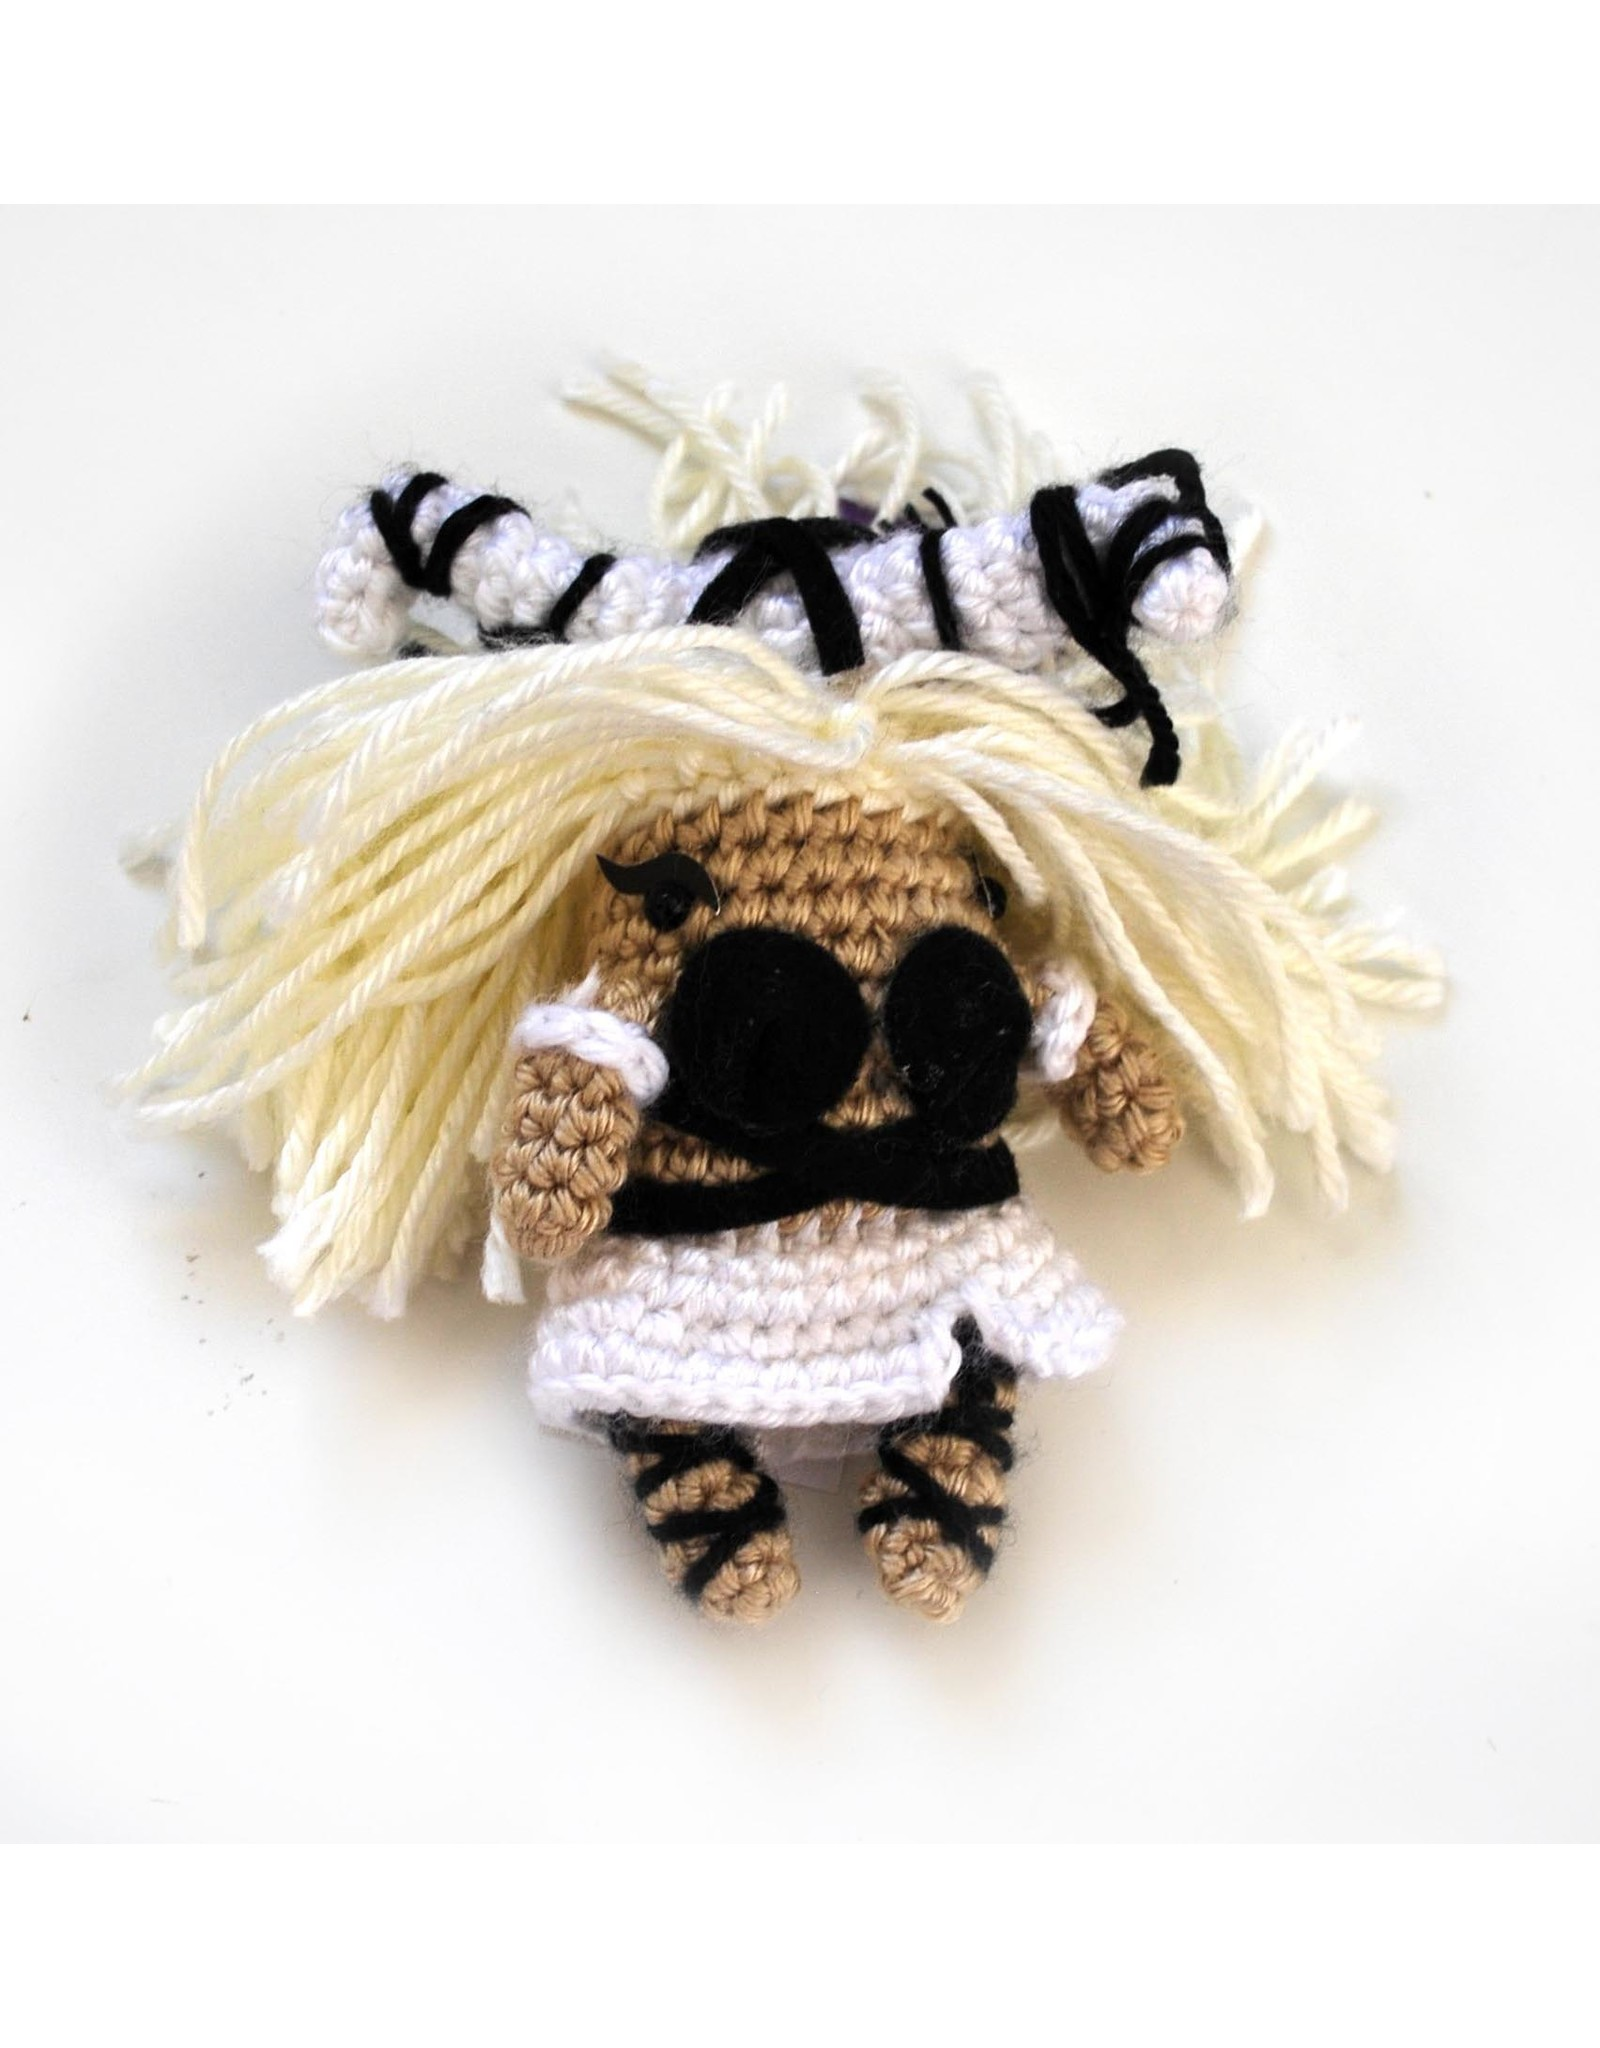 "Mats Applesauce Crochet ""Naomi Smalls"" by Mats Applesauce Crochet"